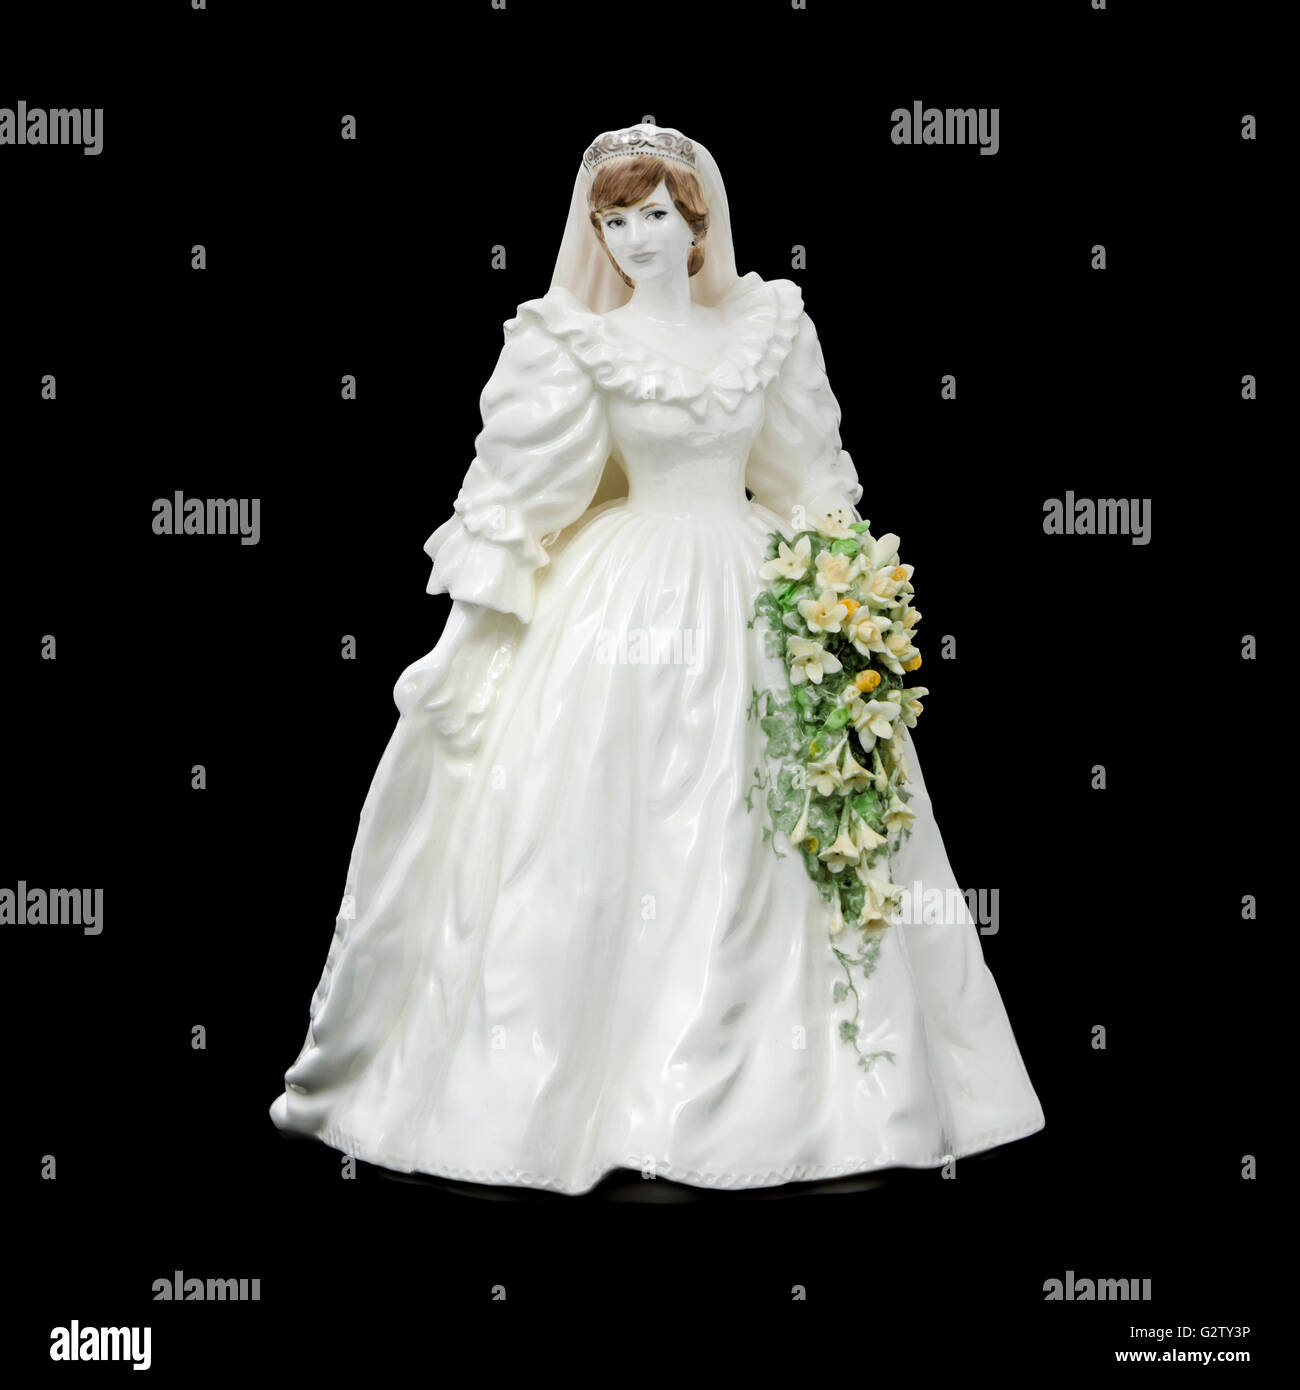 Princess Diana Wedding Dress High Resolution Stock Photography And